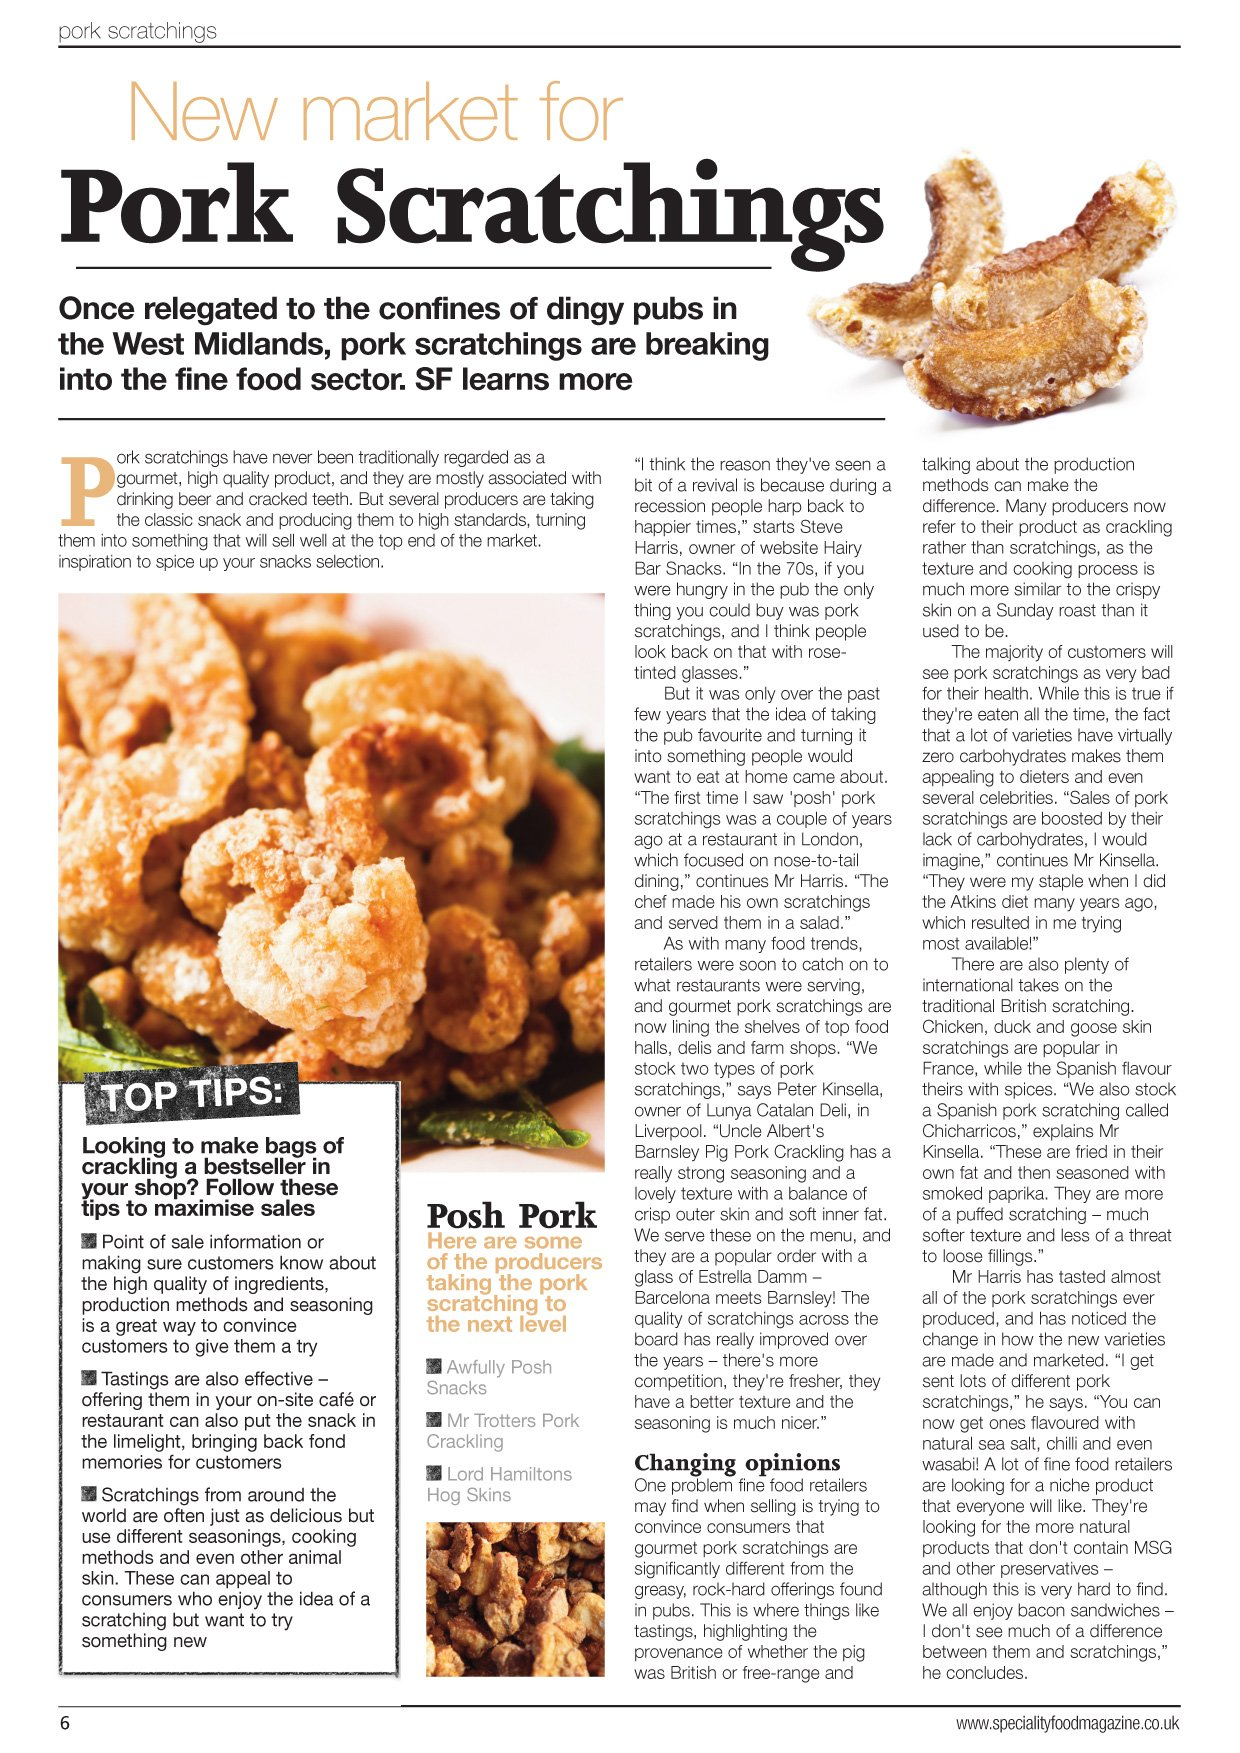 Speciality Food Magazine Article Hairy Bar Snacks